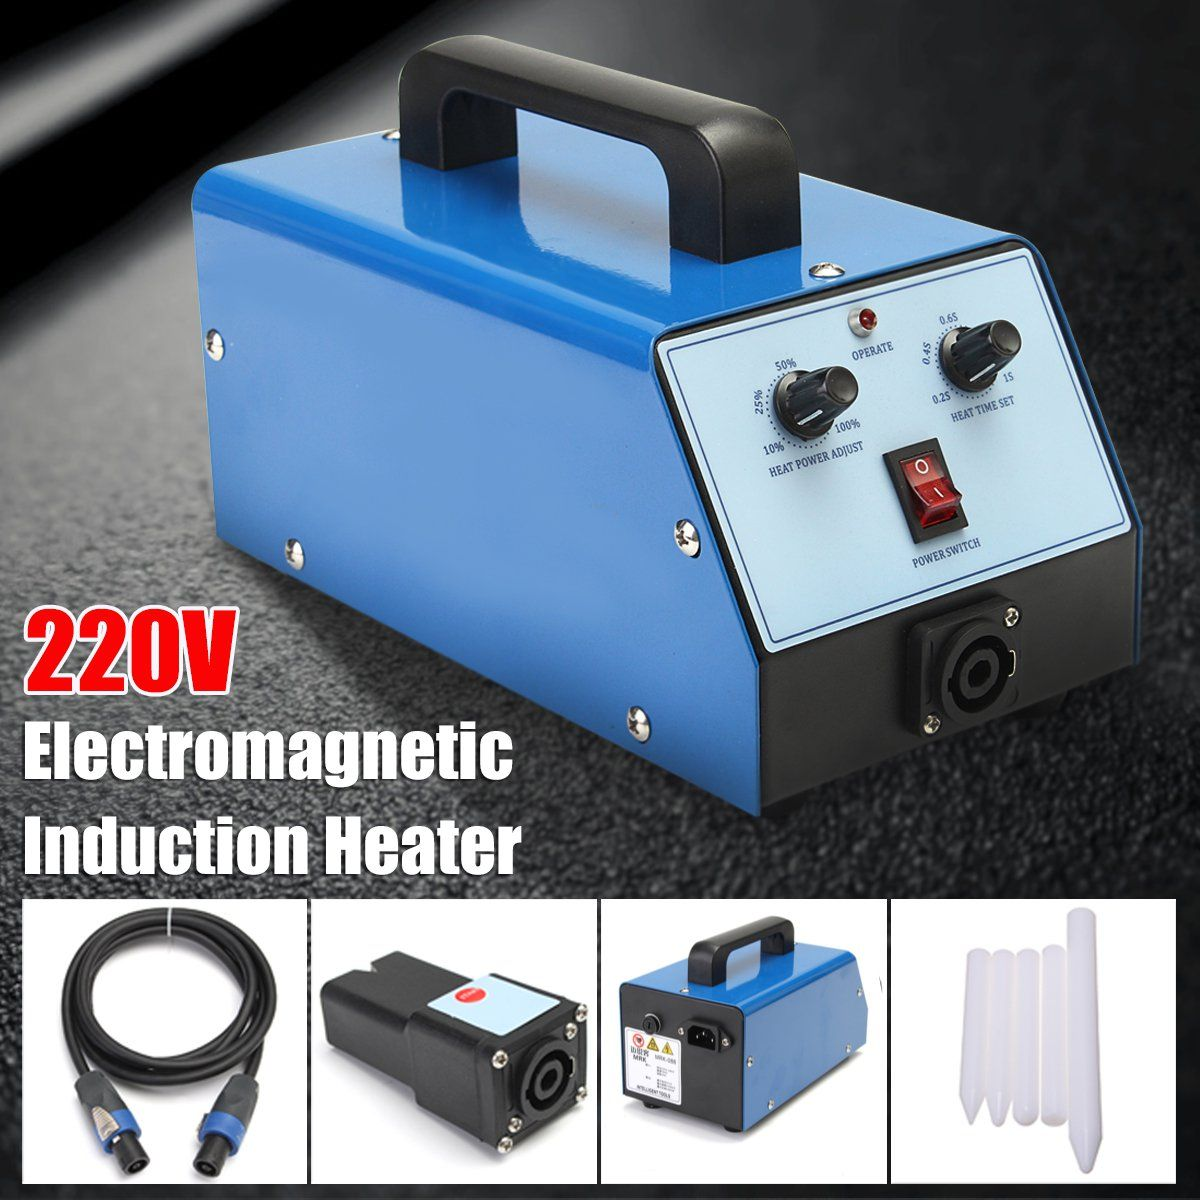 220V 1100W Blue Car Paintless Dent Repair Remover PDR Induction Heater Hot Box Electromagnetic Induction Heater For Repair Tool